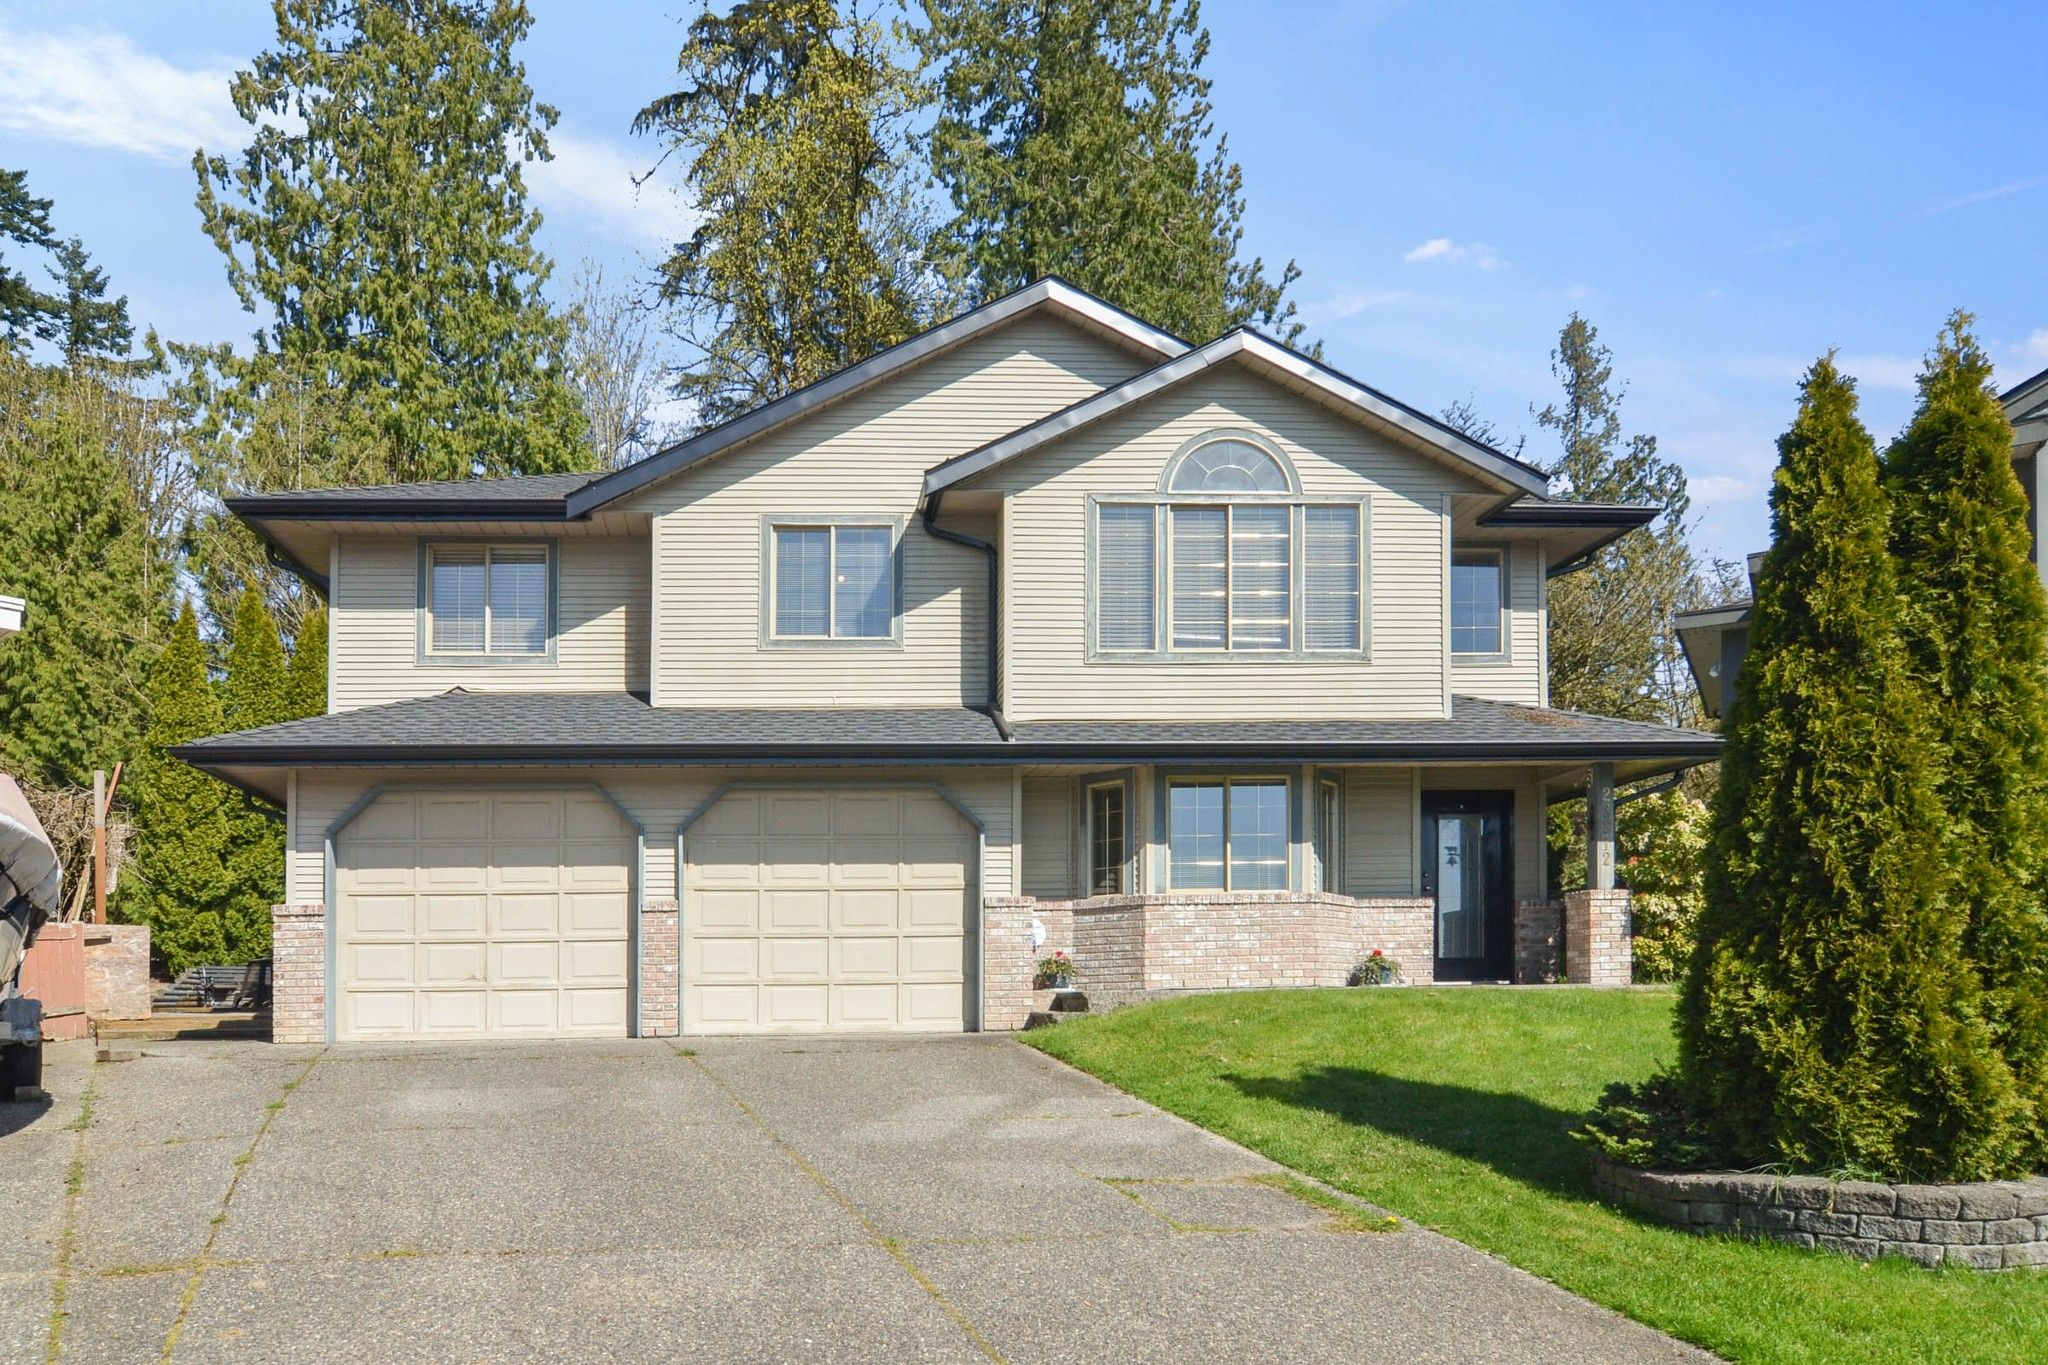 Main Photo: 23812 TAMARACK Place in Maple Ridge: Albion House for sale : MLS®# R2572516